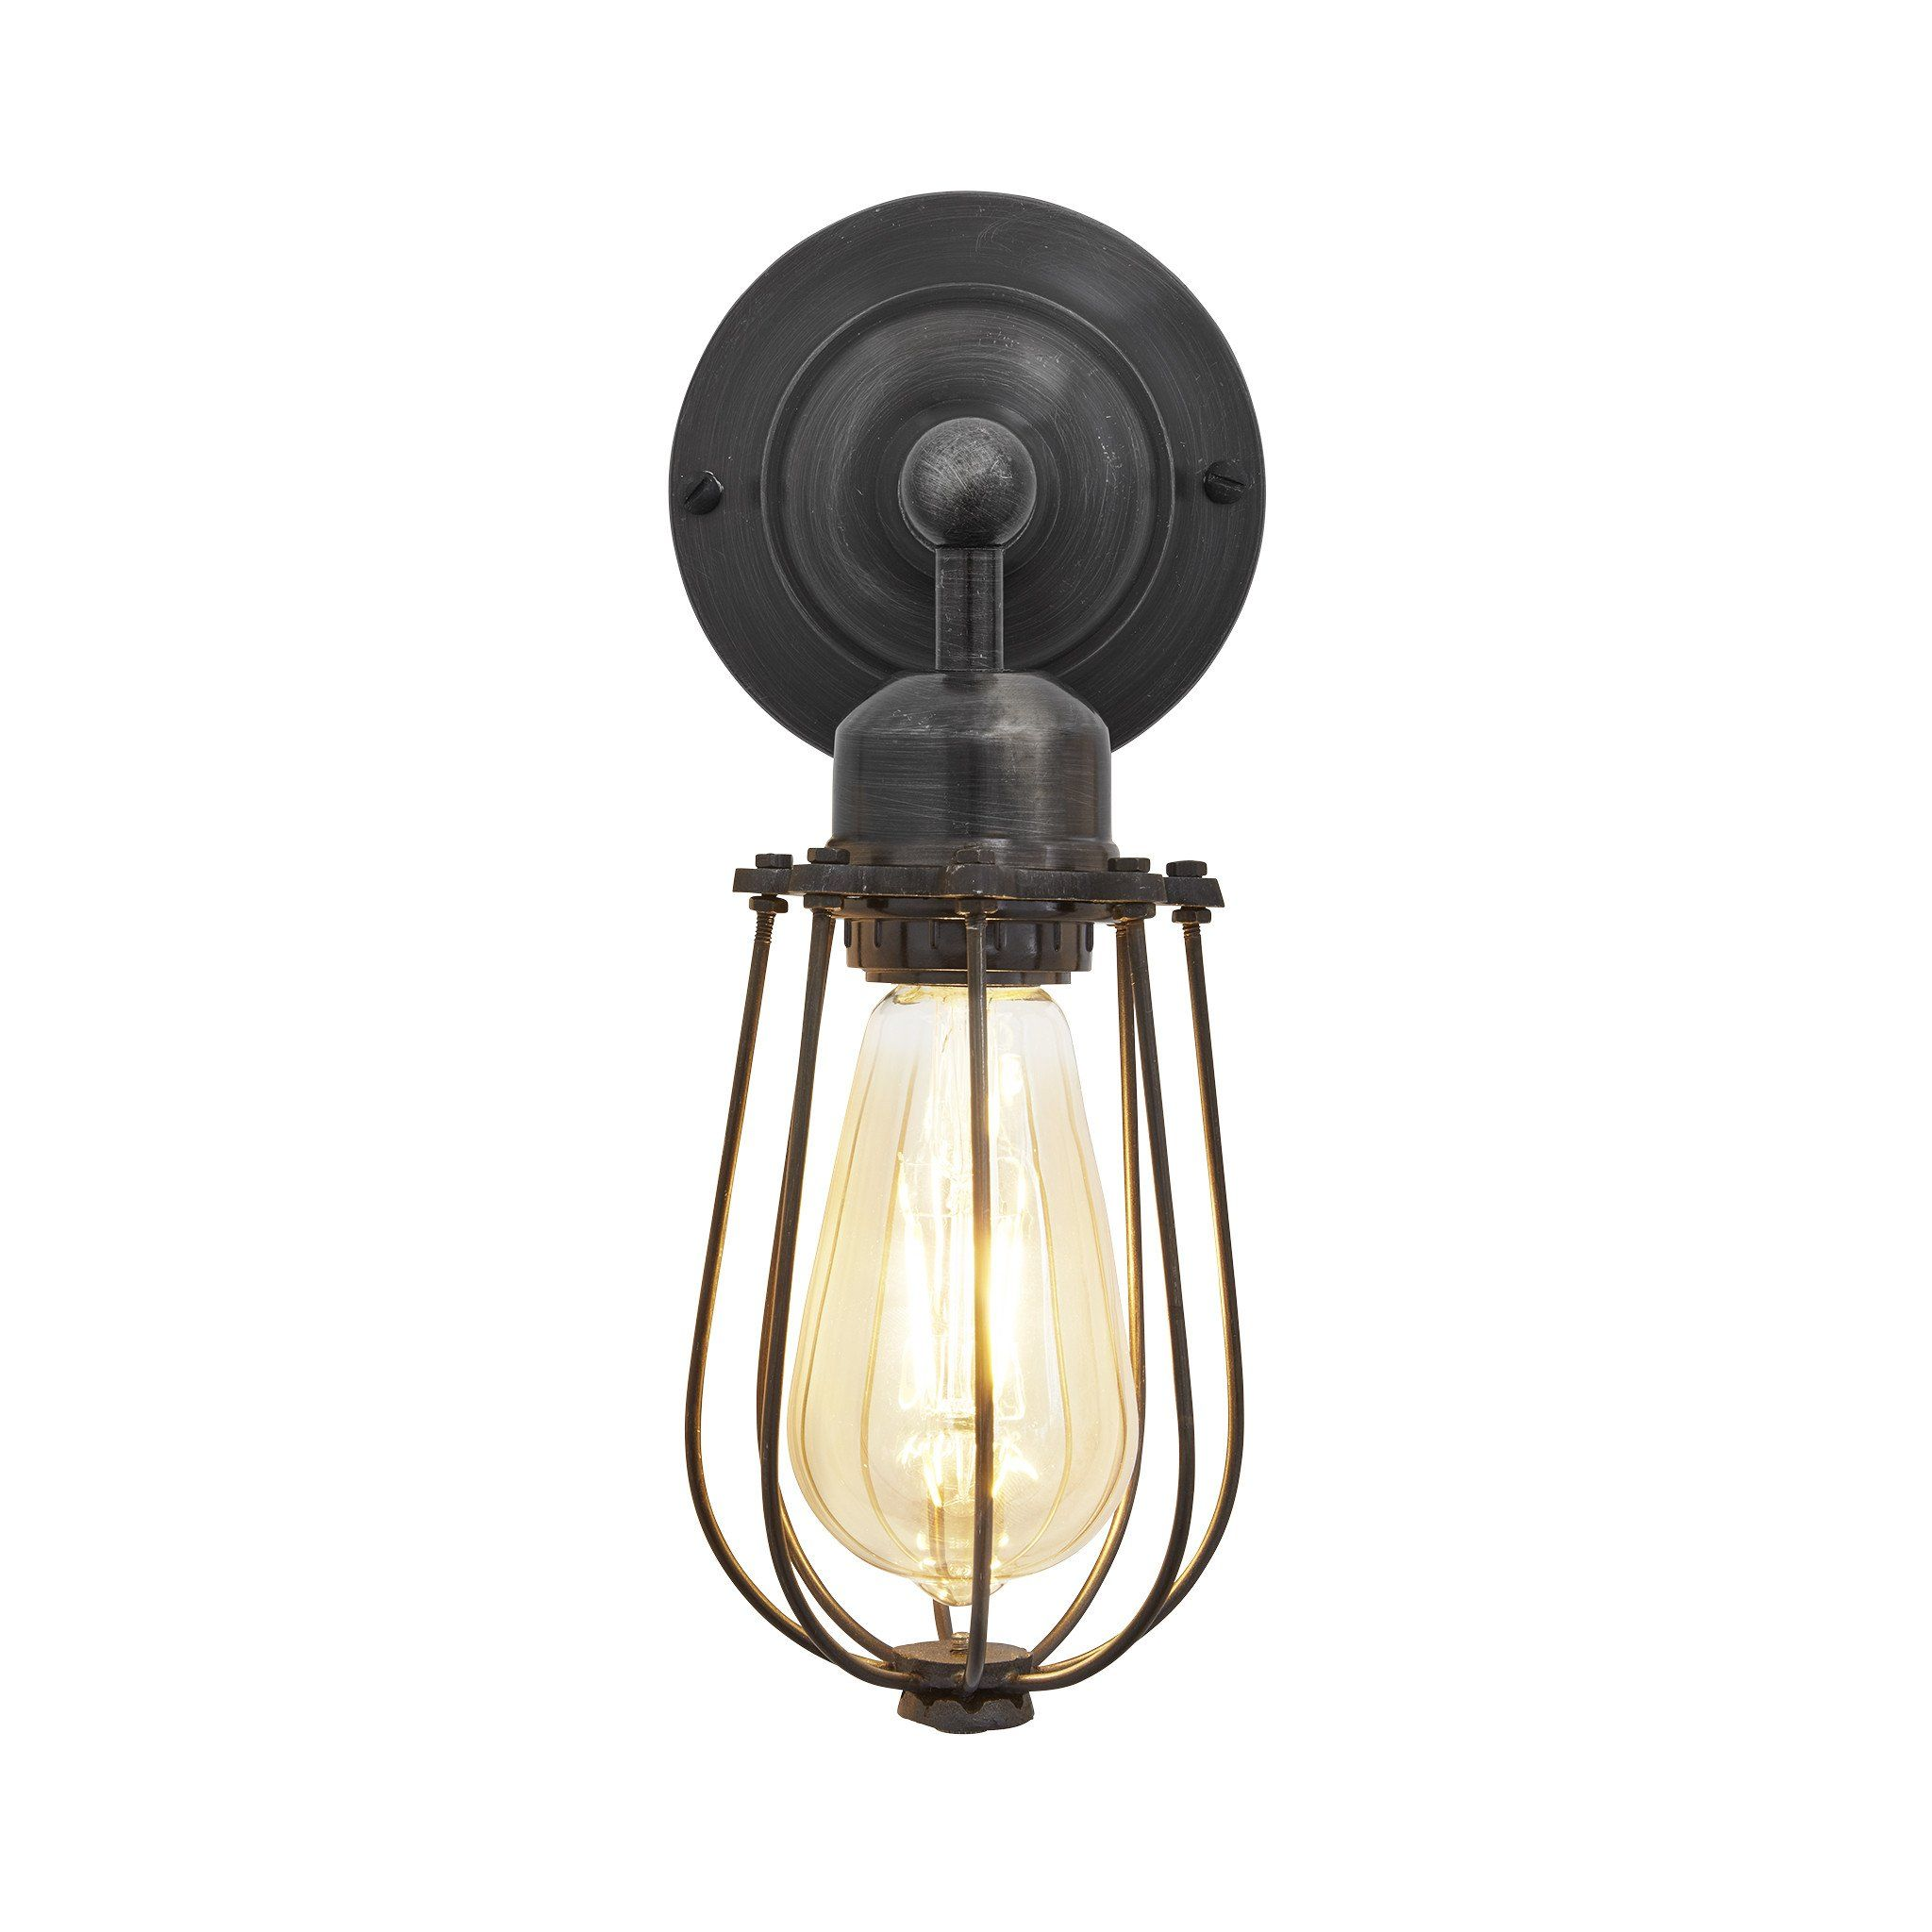 Product Image Wall Lights Industrial Pinterest Sconces Wire Light Orlando Cylinder Cage Retro Holloways Of Ludlow